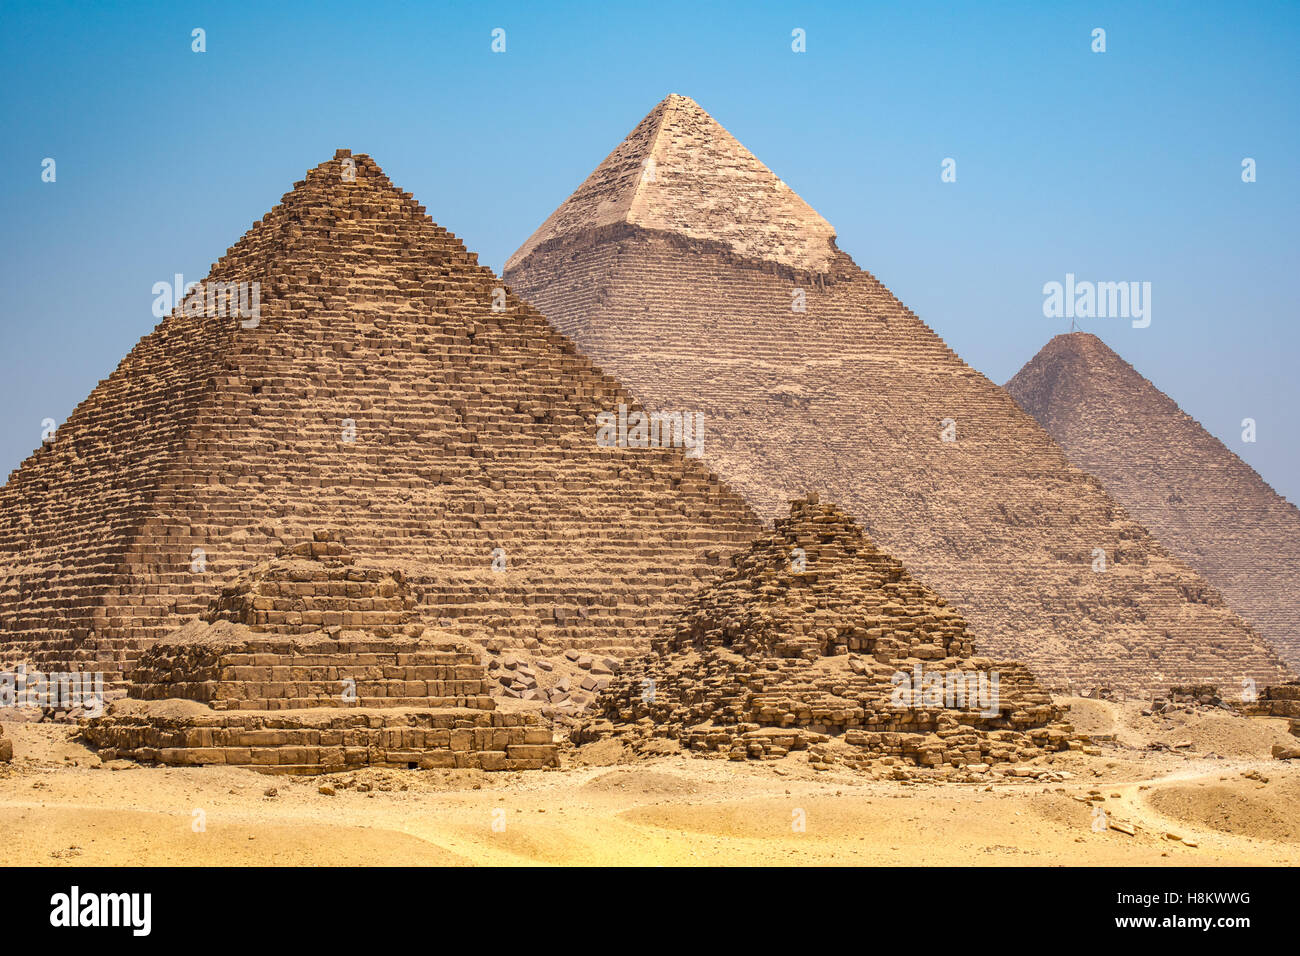 Cairo, Egypt The three Great pyramids of Giza against a clear blue sky. From left to right stands the Pyramid of - Stock Image